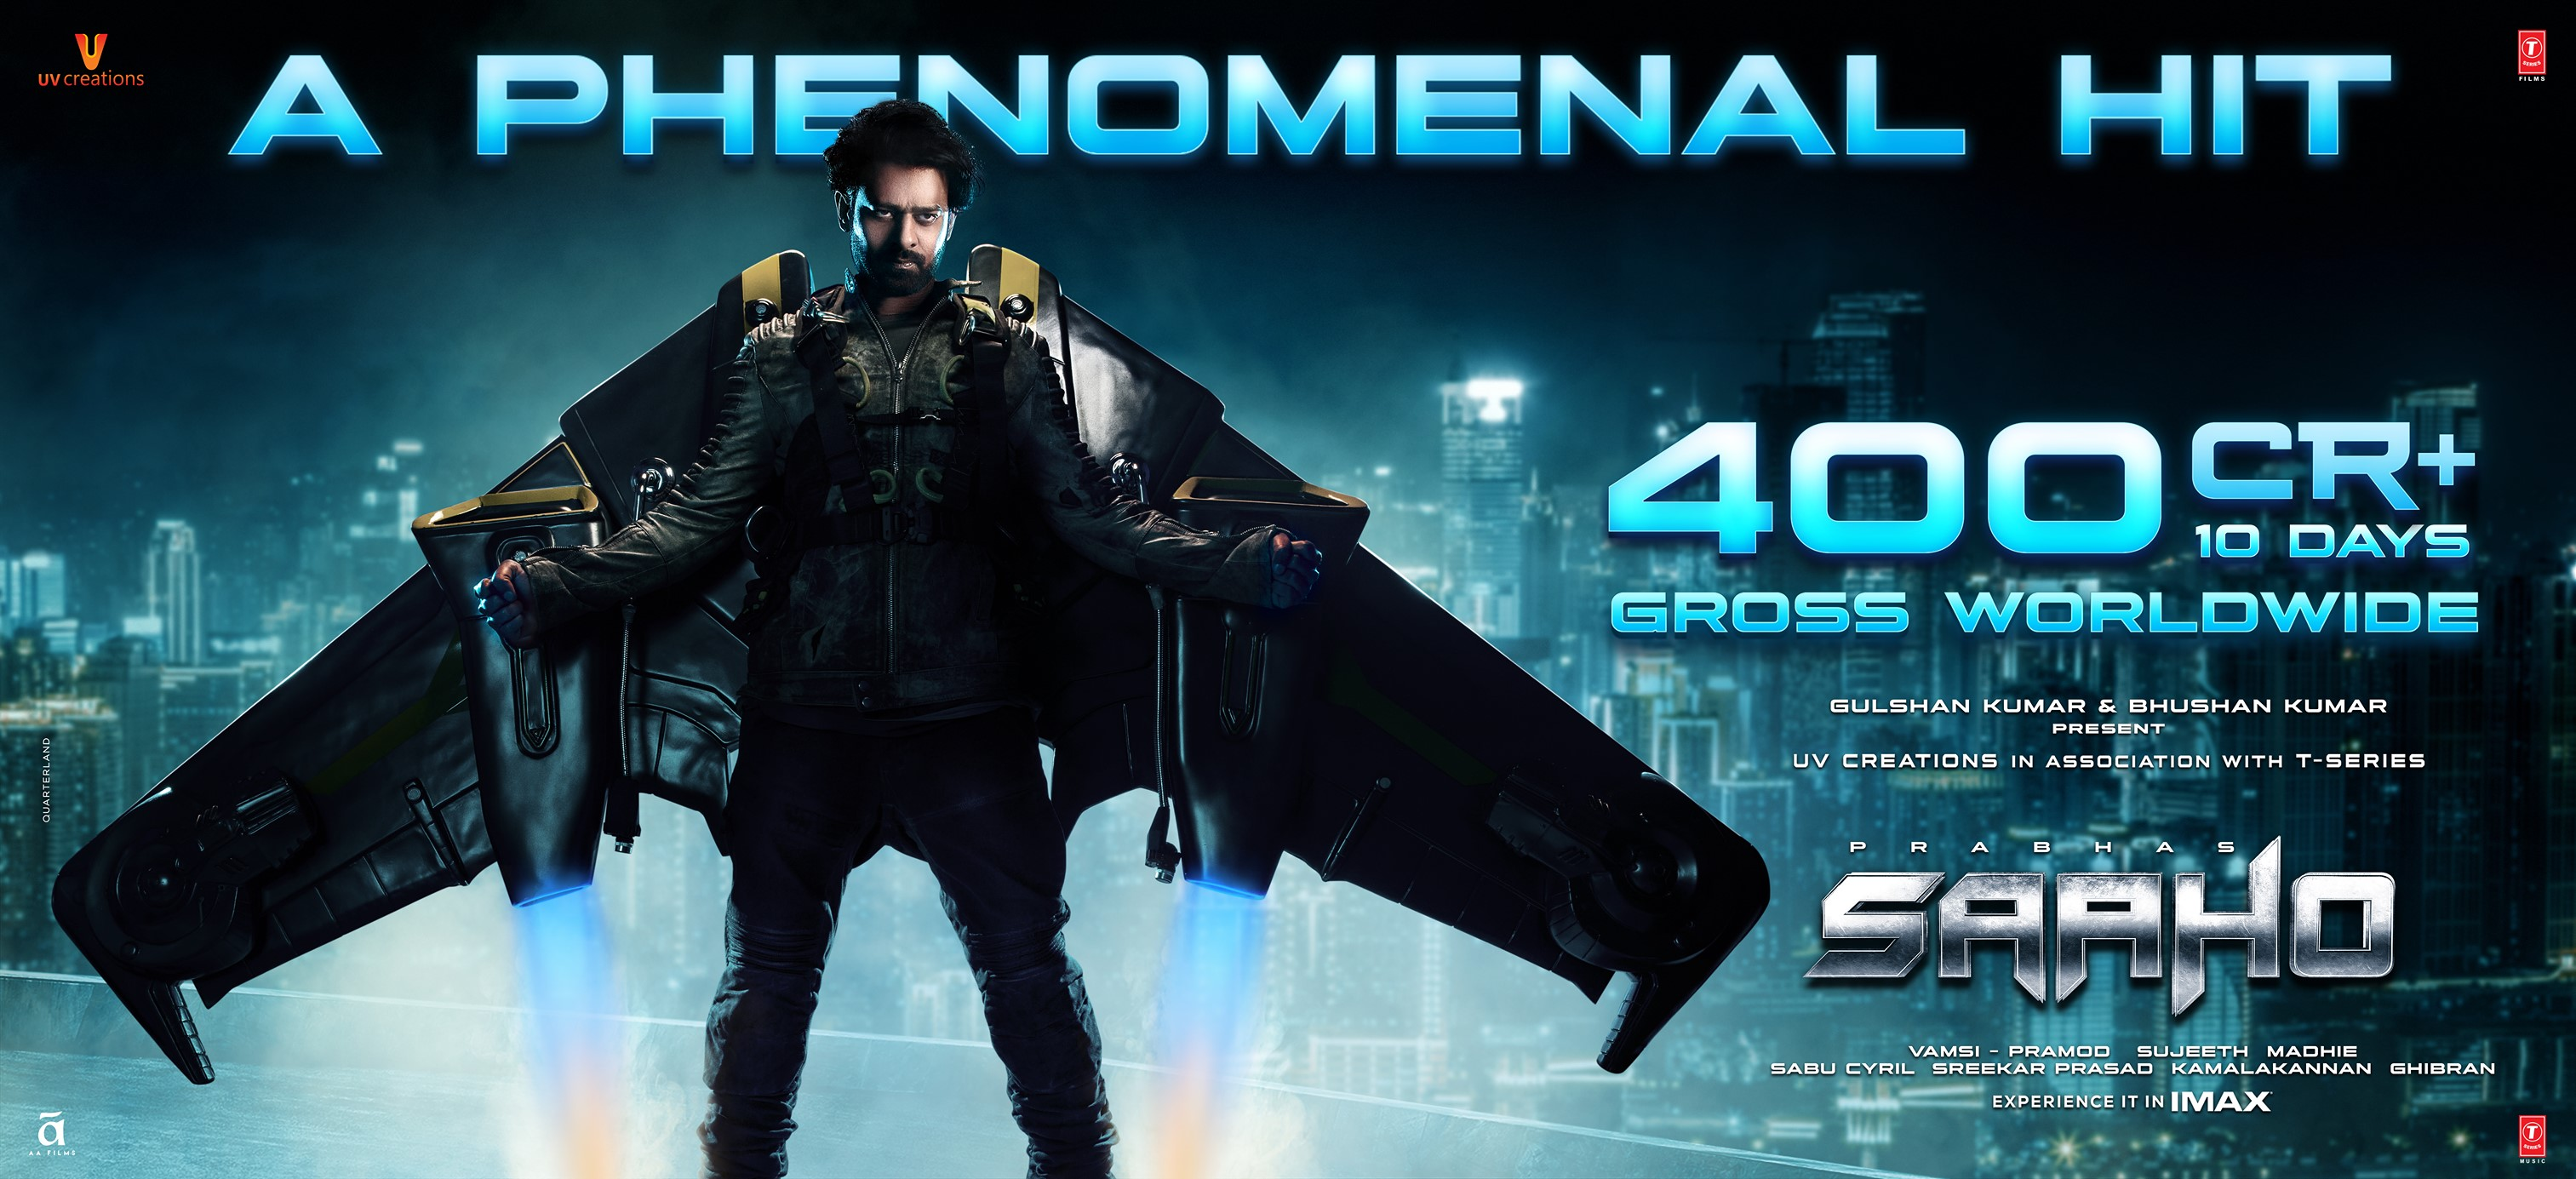 Prabhas Saaho fever continues as it crosses the 400 crores benchmark across the globe